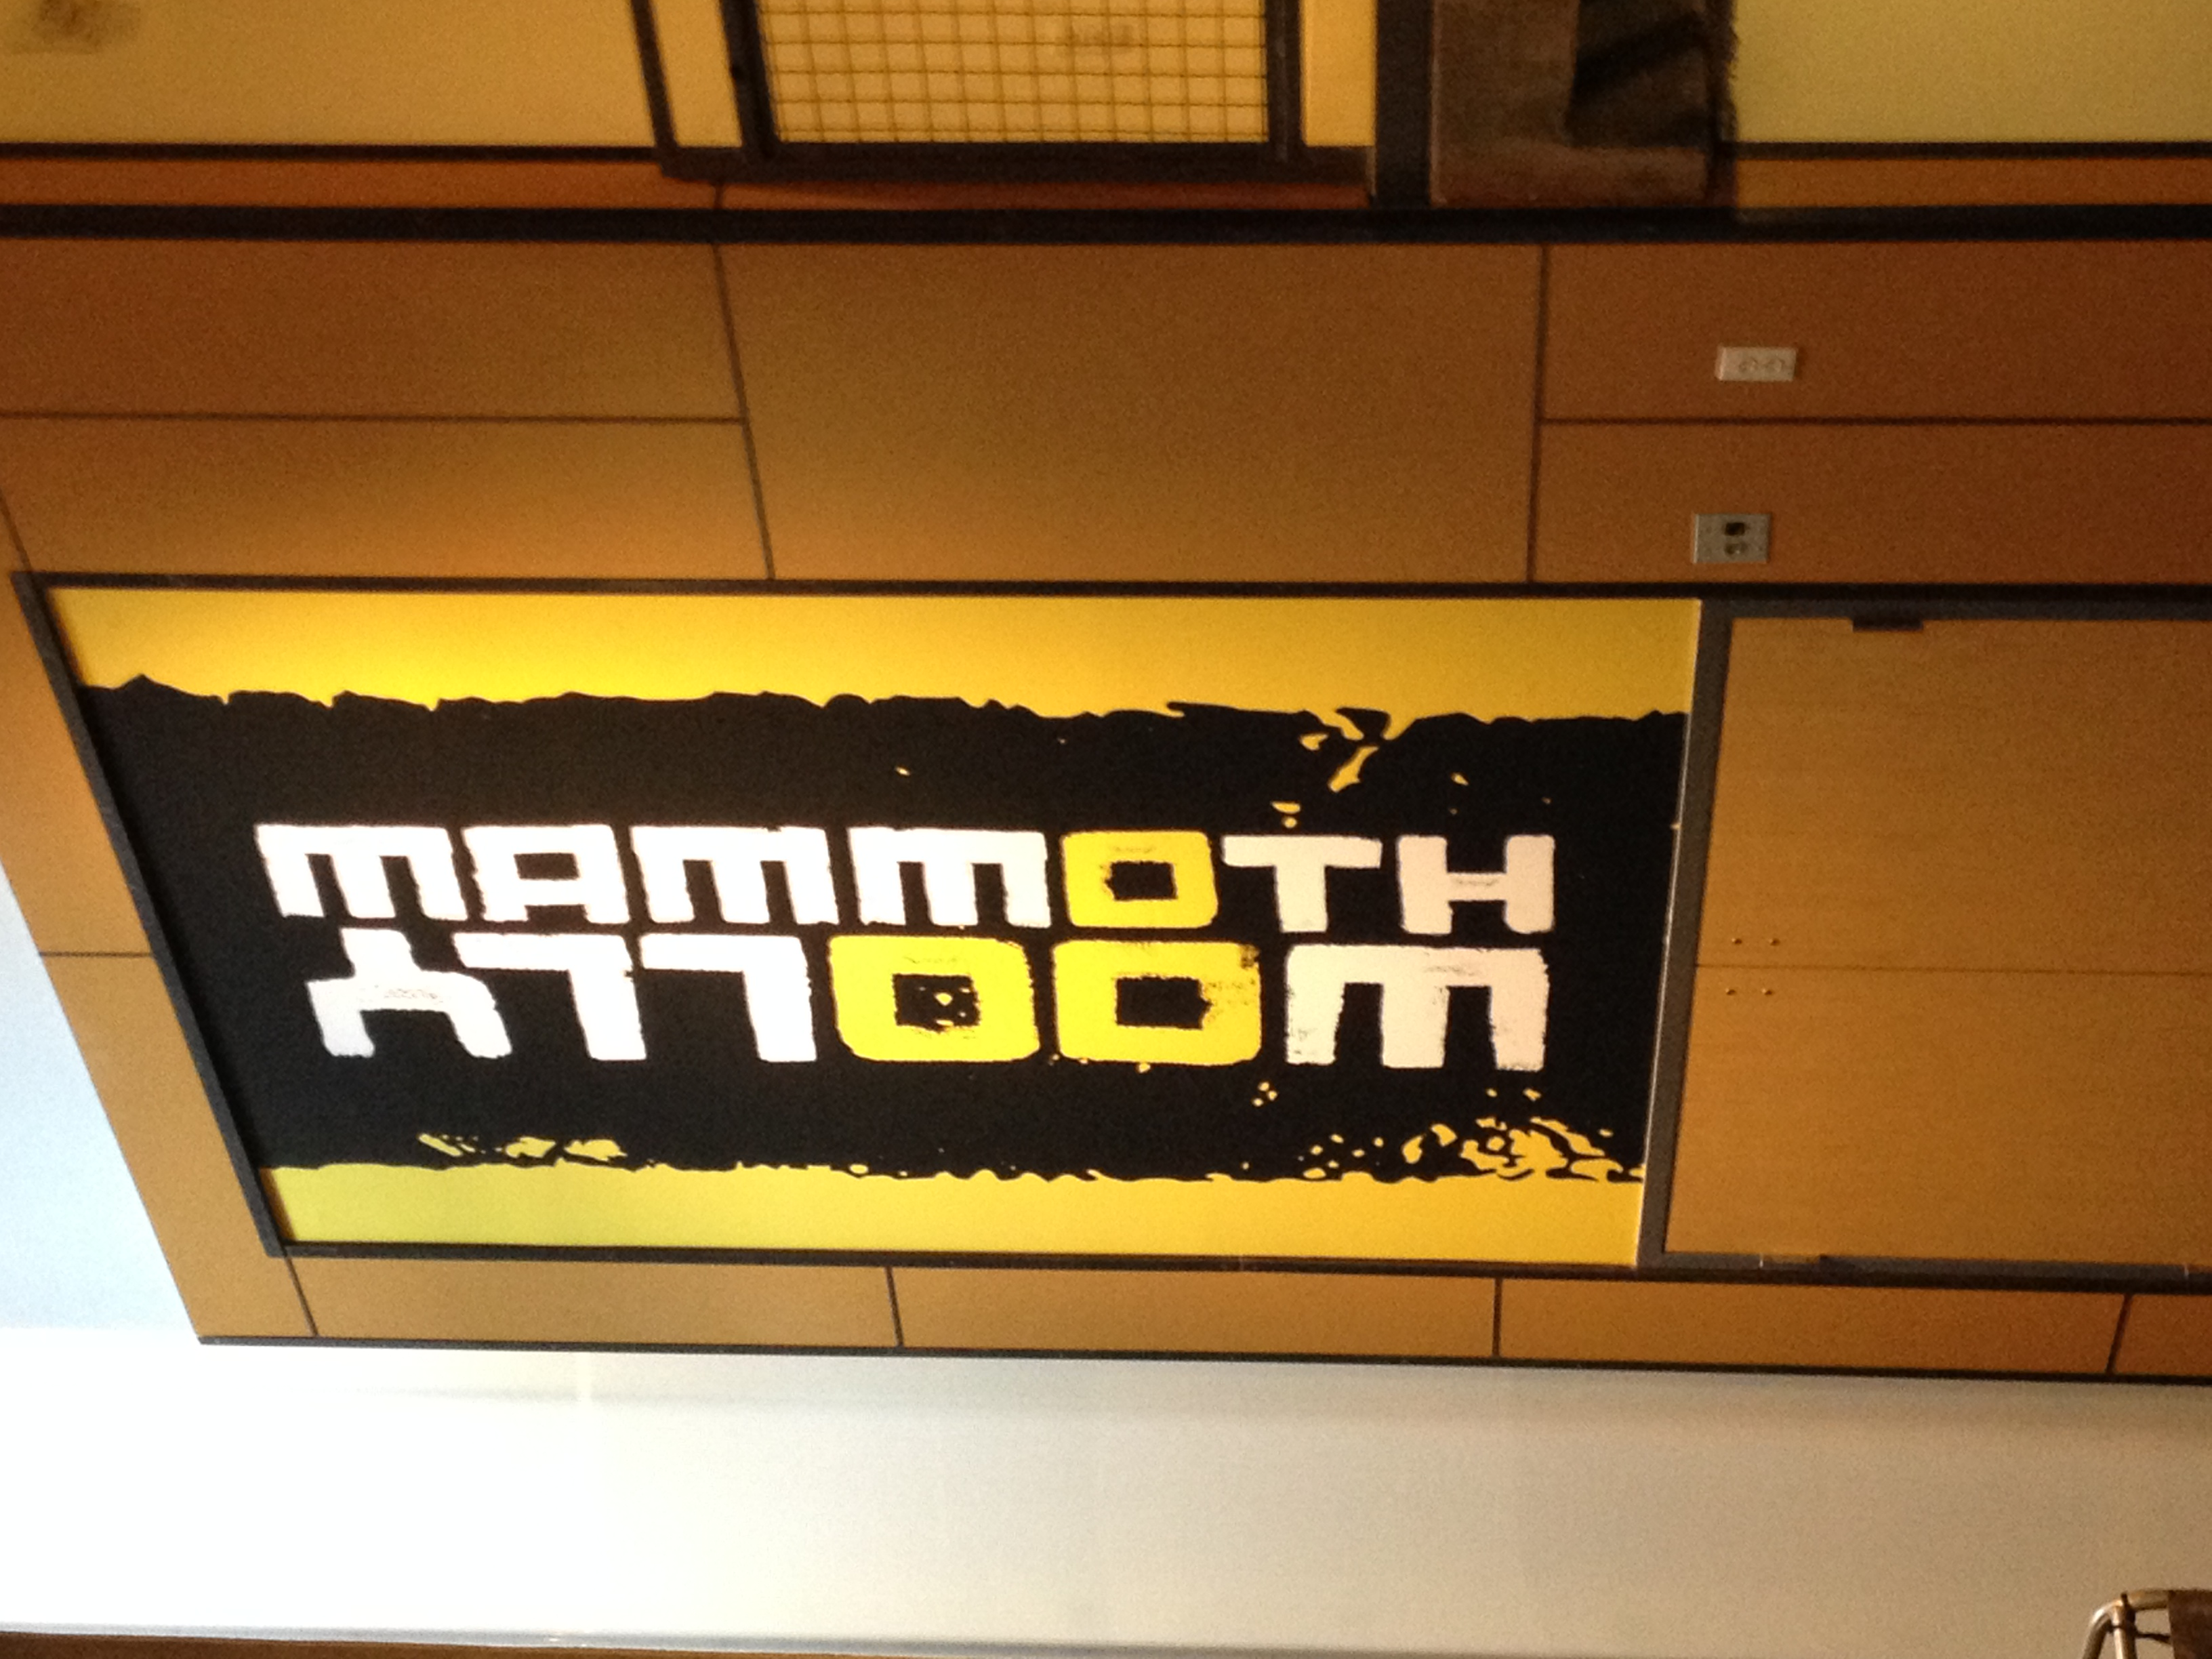 Full color print on adhesive wall fabric for Wooly Mammoth Theatre